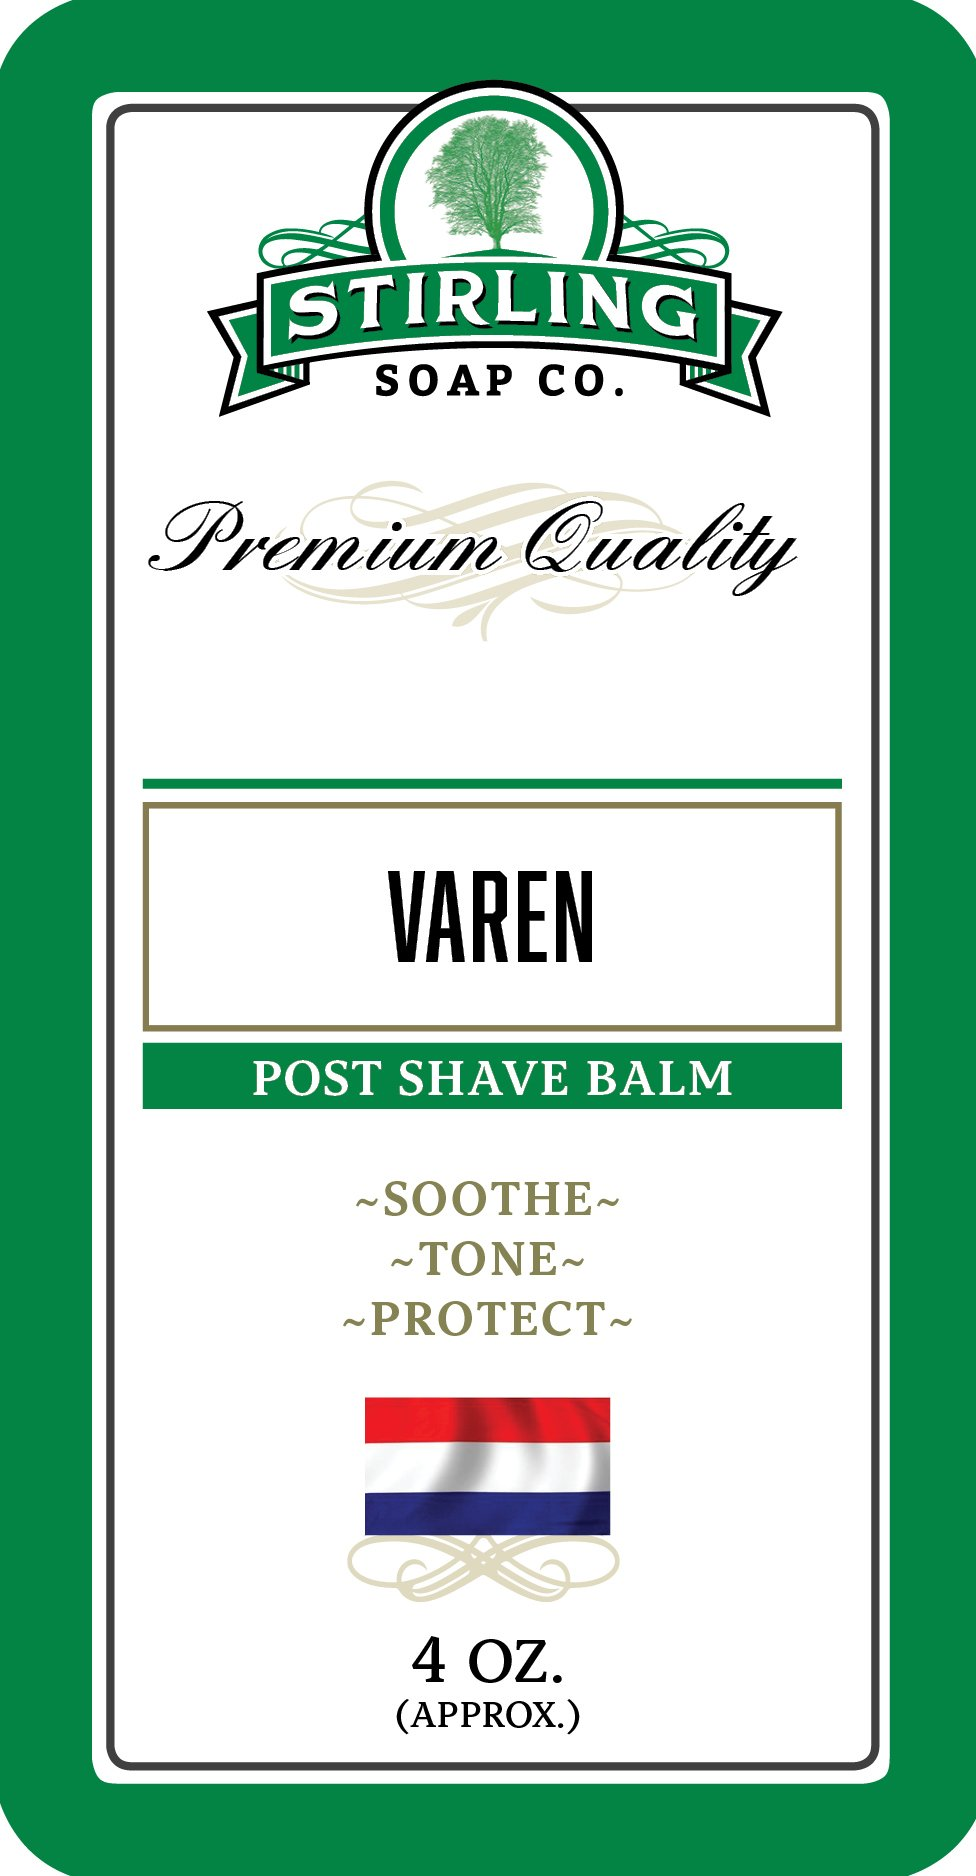 Stirling Soap Co. - Varen - Balm image